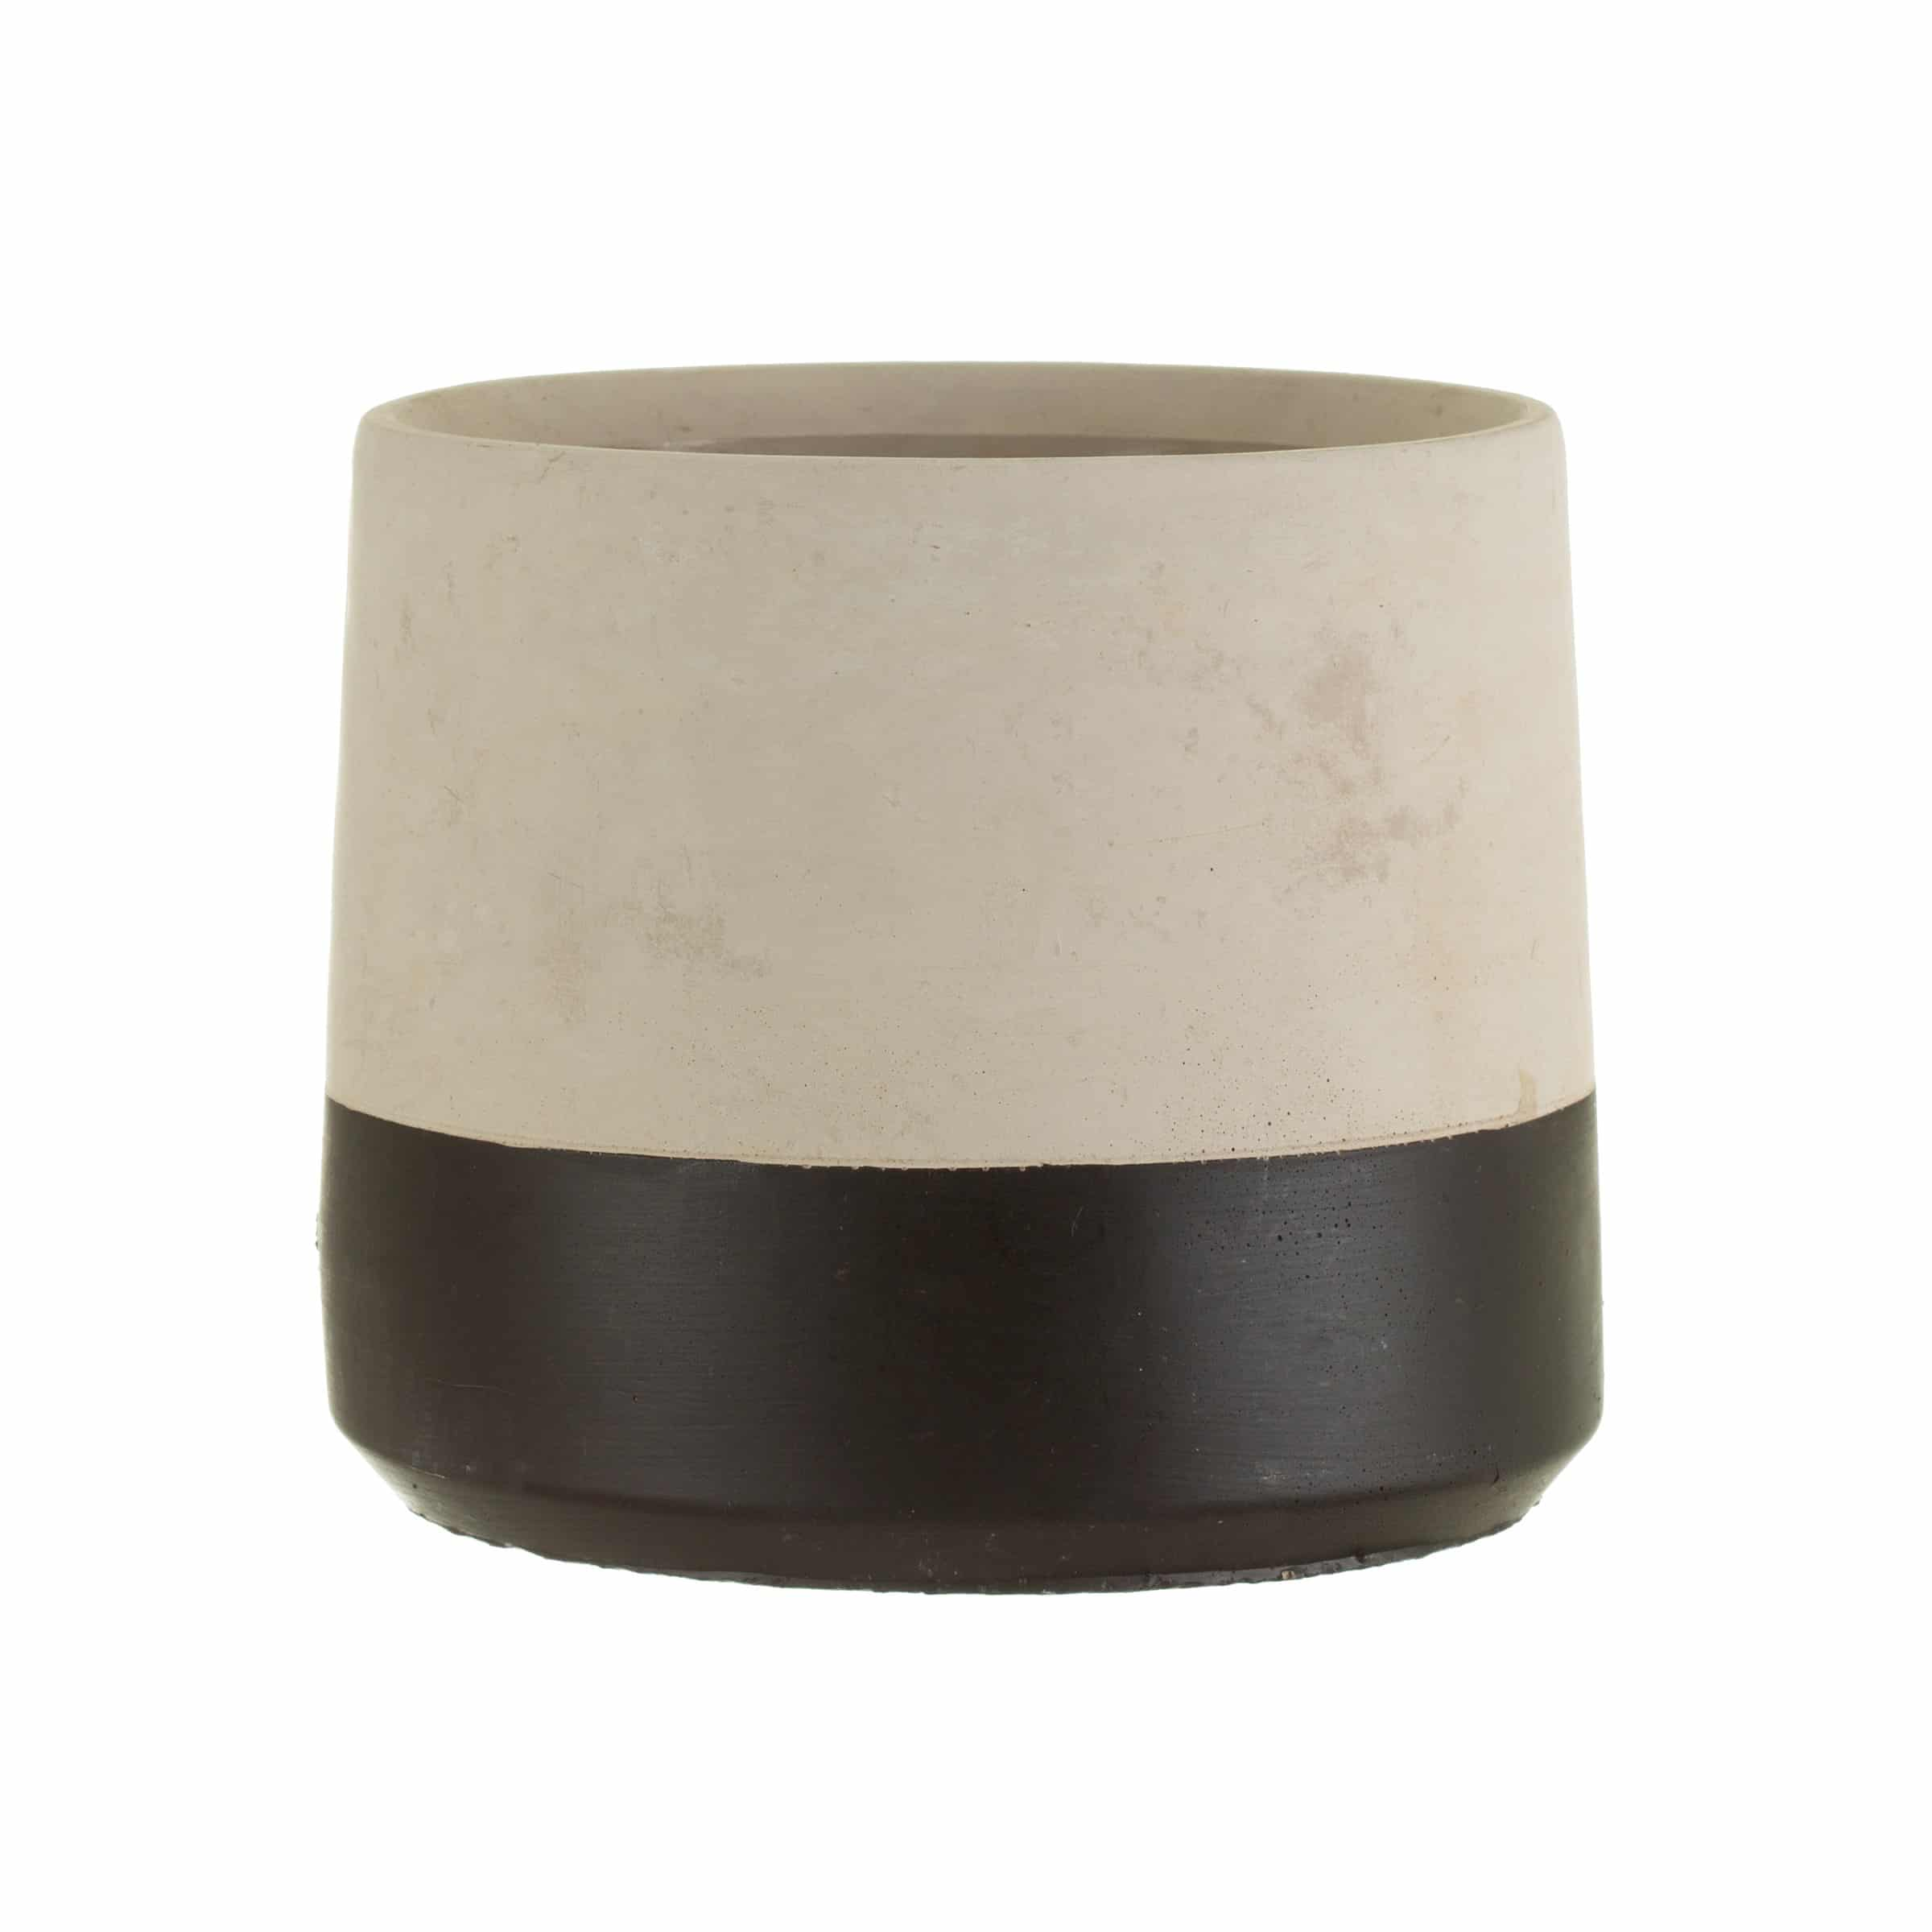 Cement planter with black stripe on white background